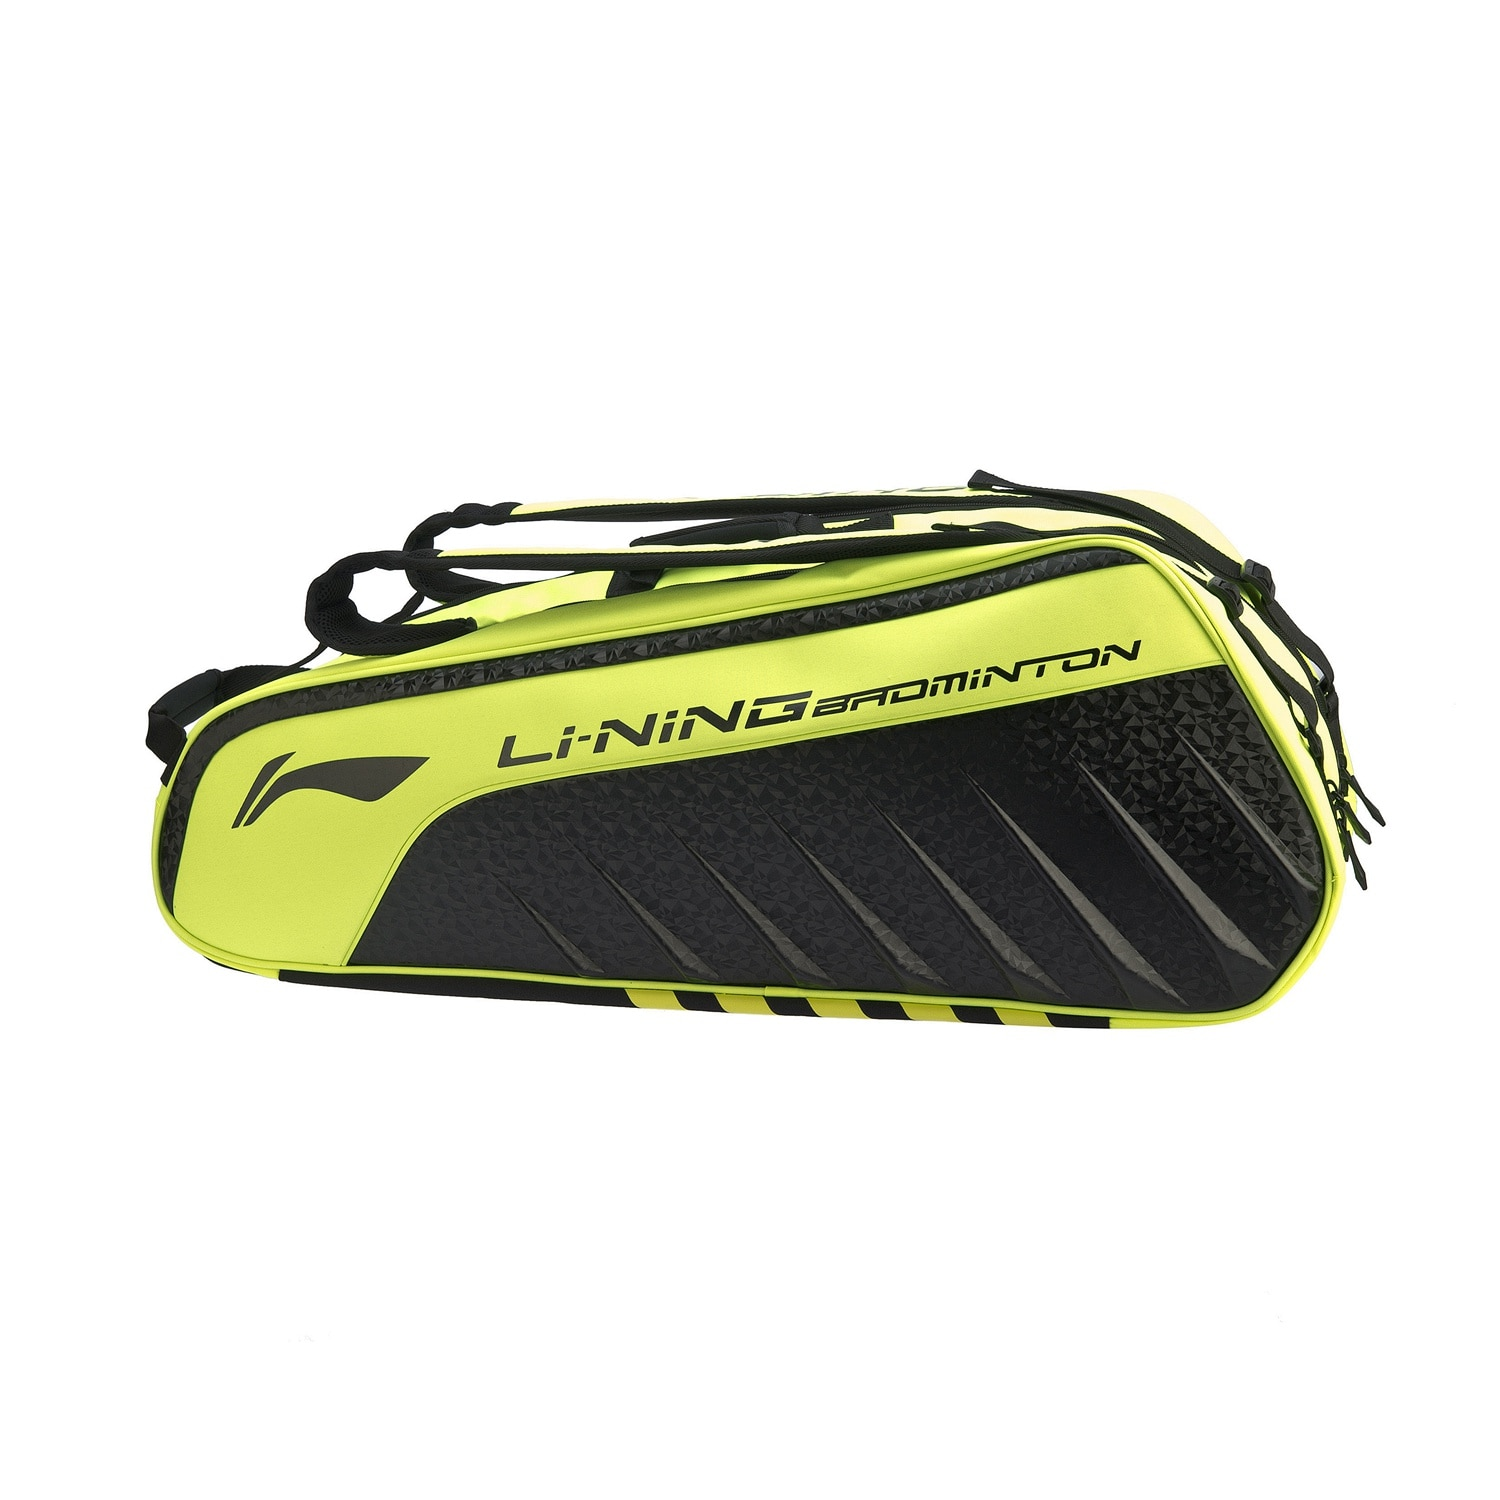 Badminton Series Racket Bag 6-Pack Racket Storage Bag with Shoe Compartments Portable Tote Abjp078